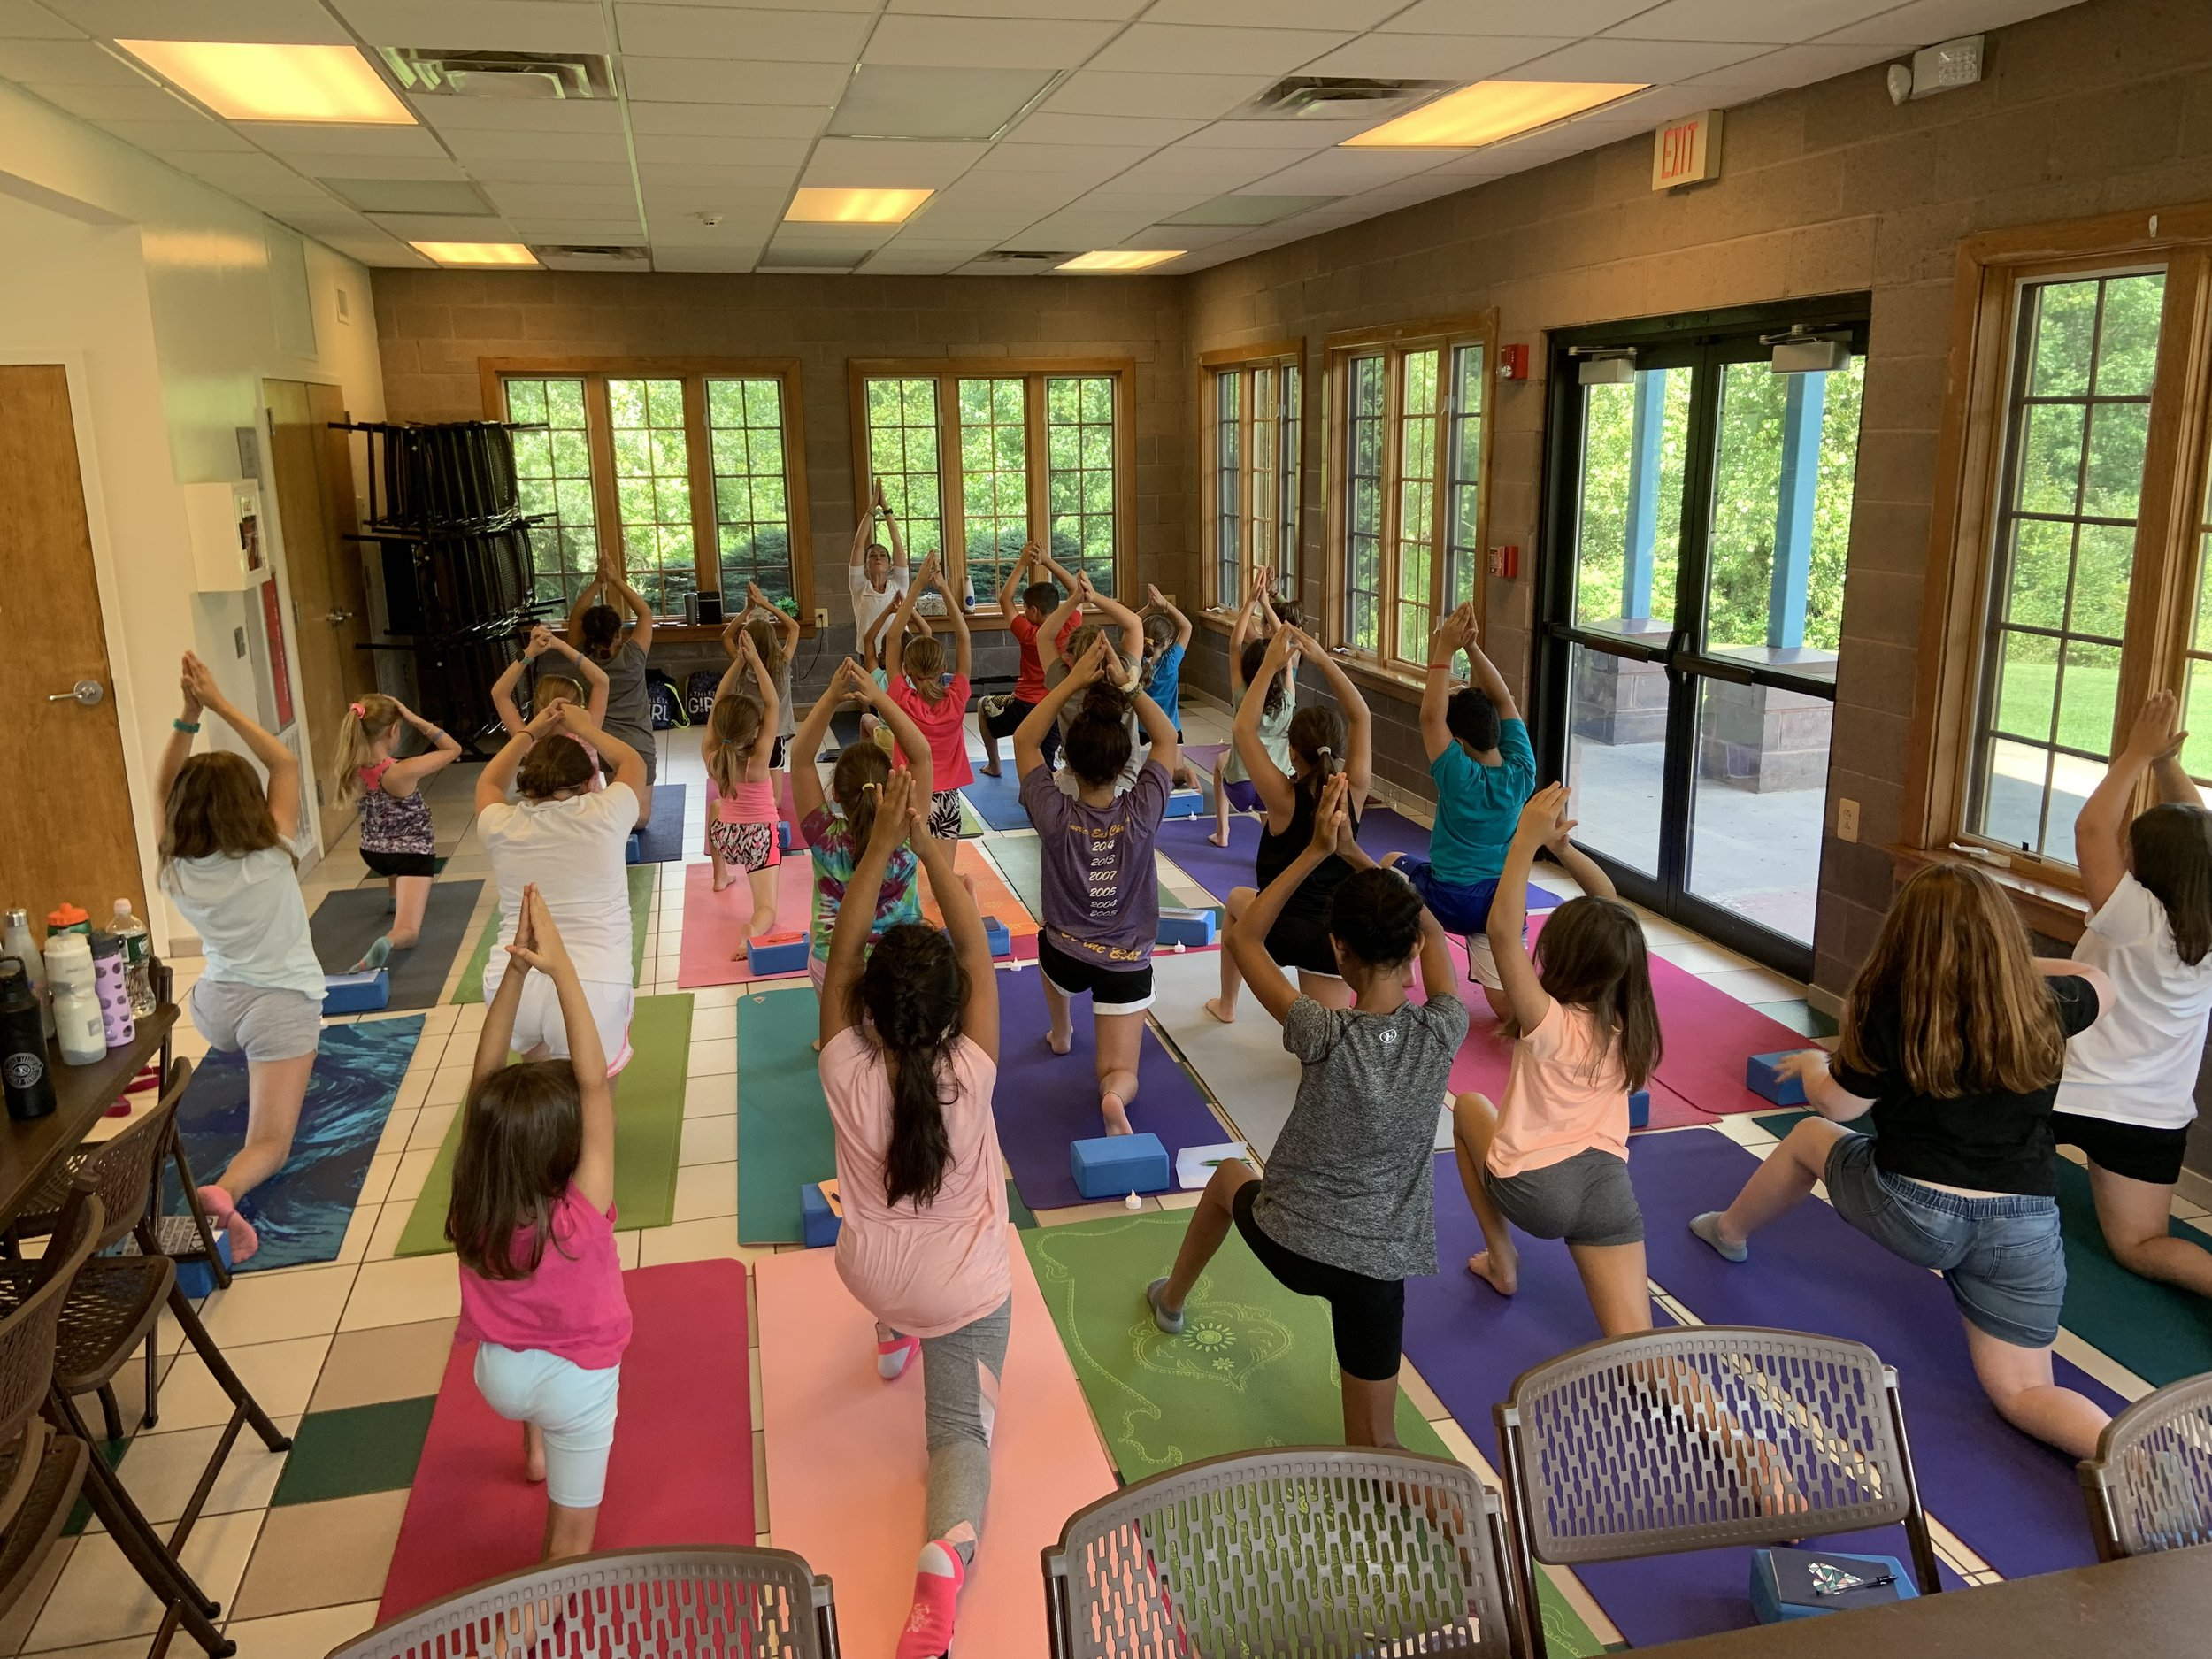 Lunging into our afternoon with our Tweens — a great stretch and flow!